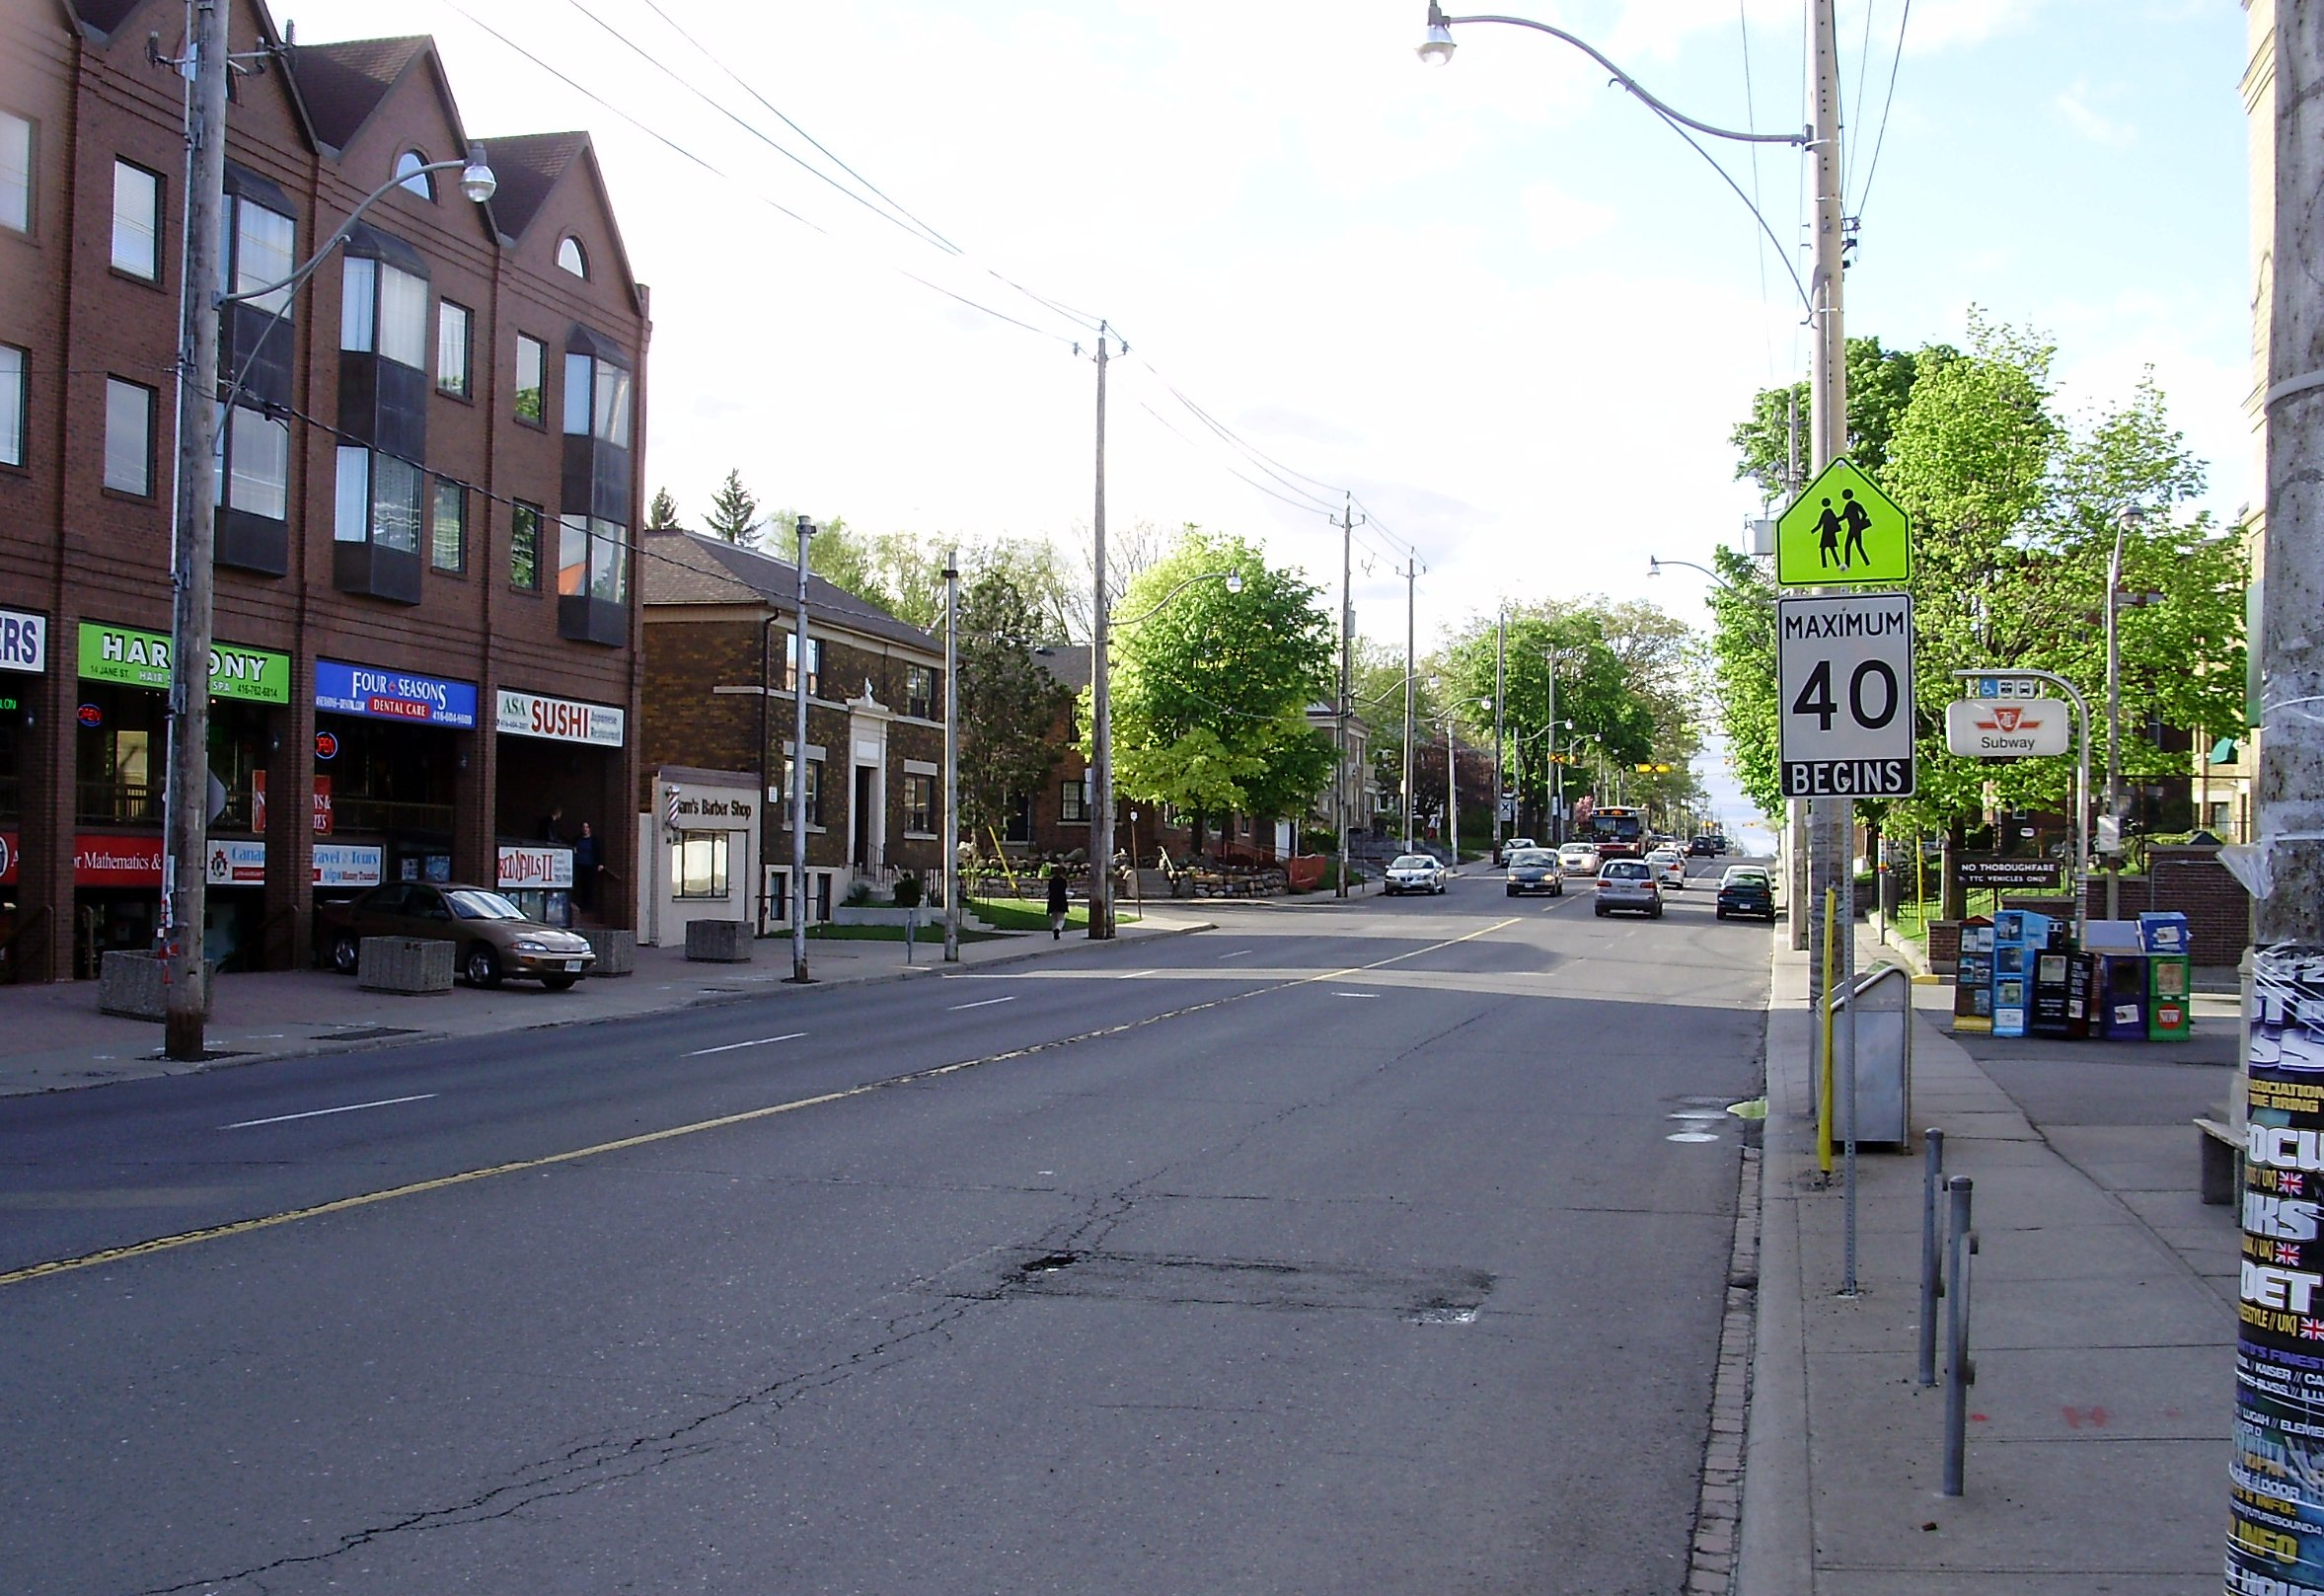 File:Jane Street from Bloor.jpg - Wikipedia, the free encyclopedia Street